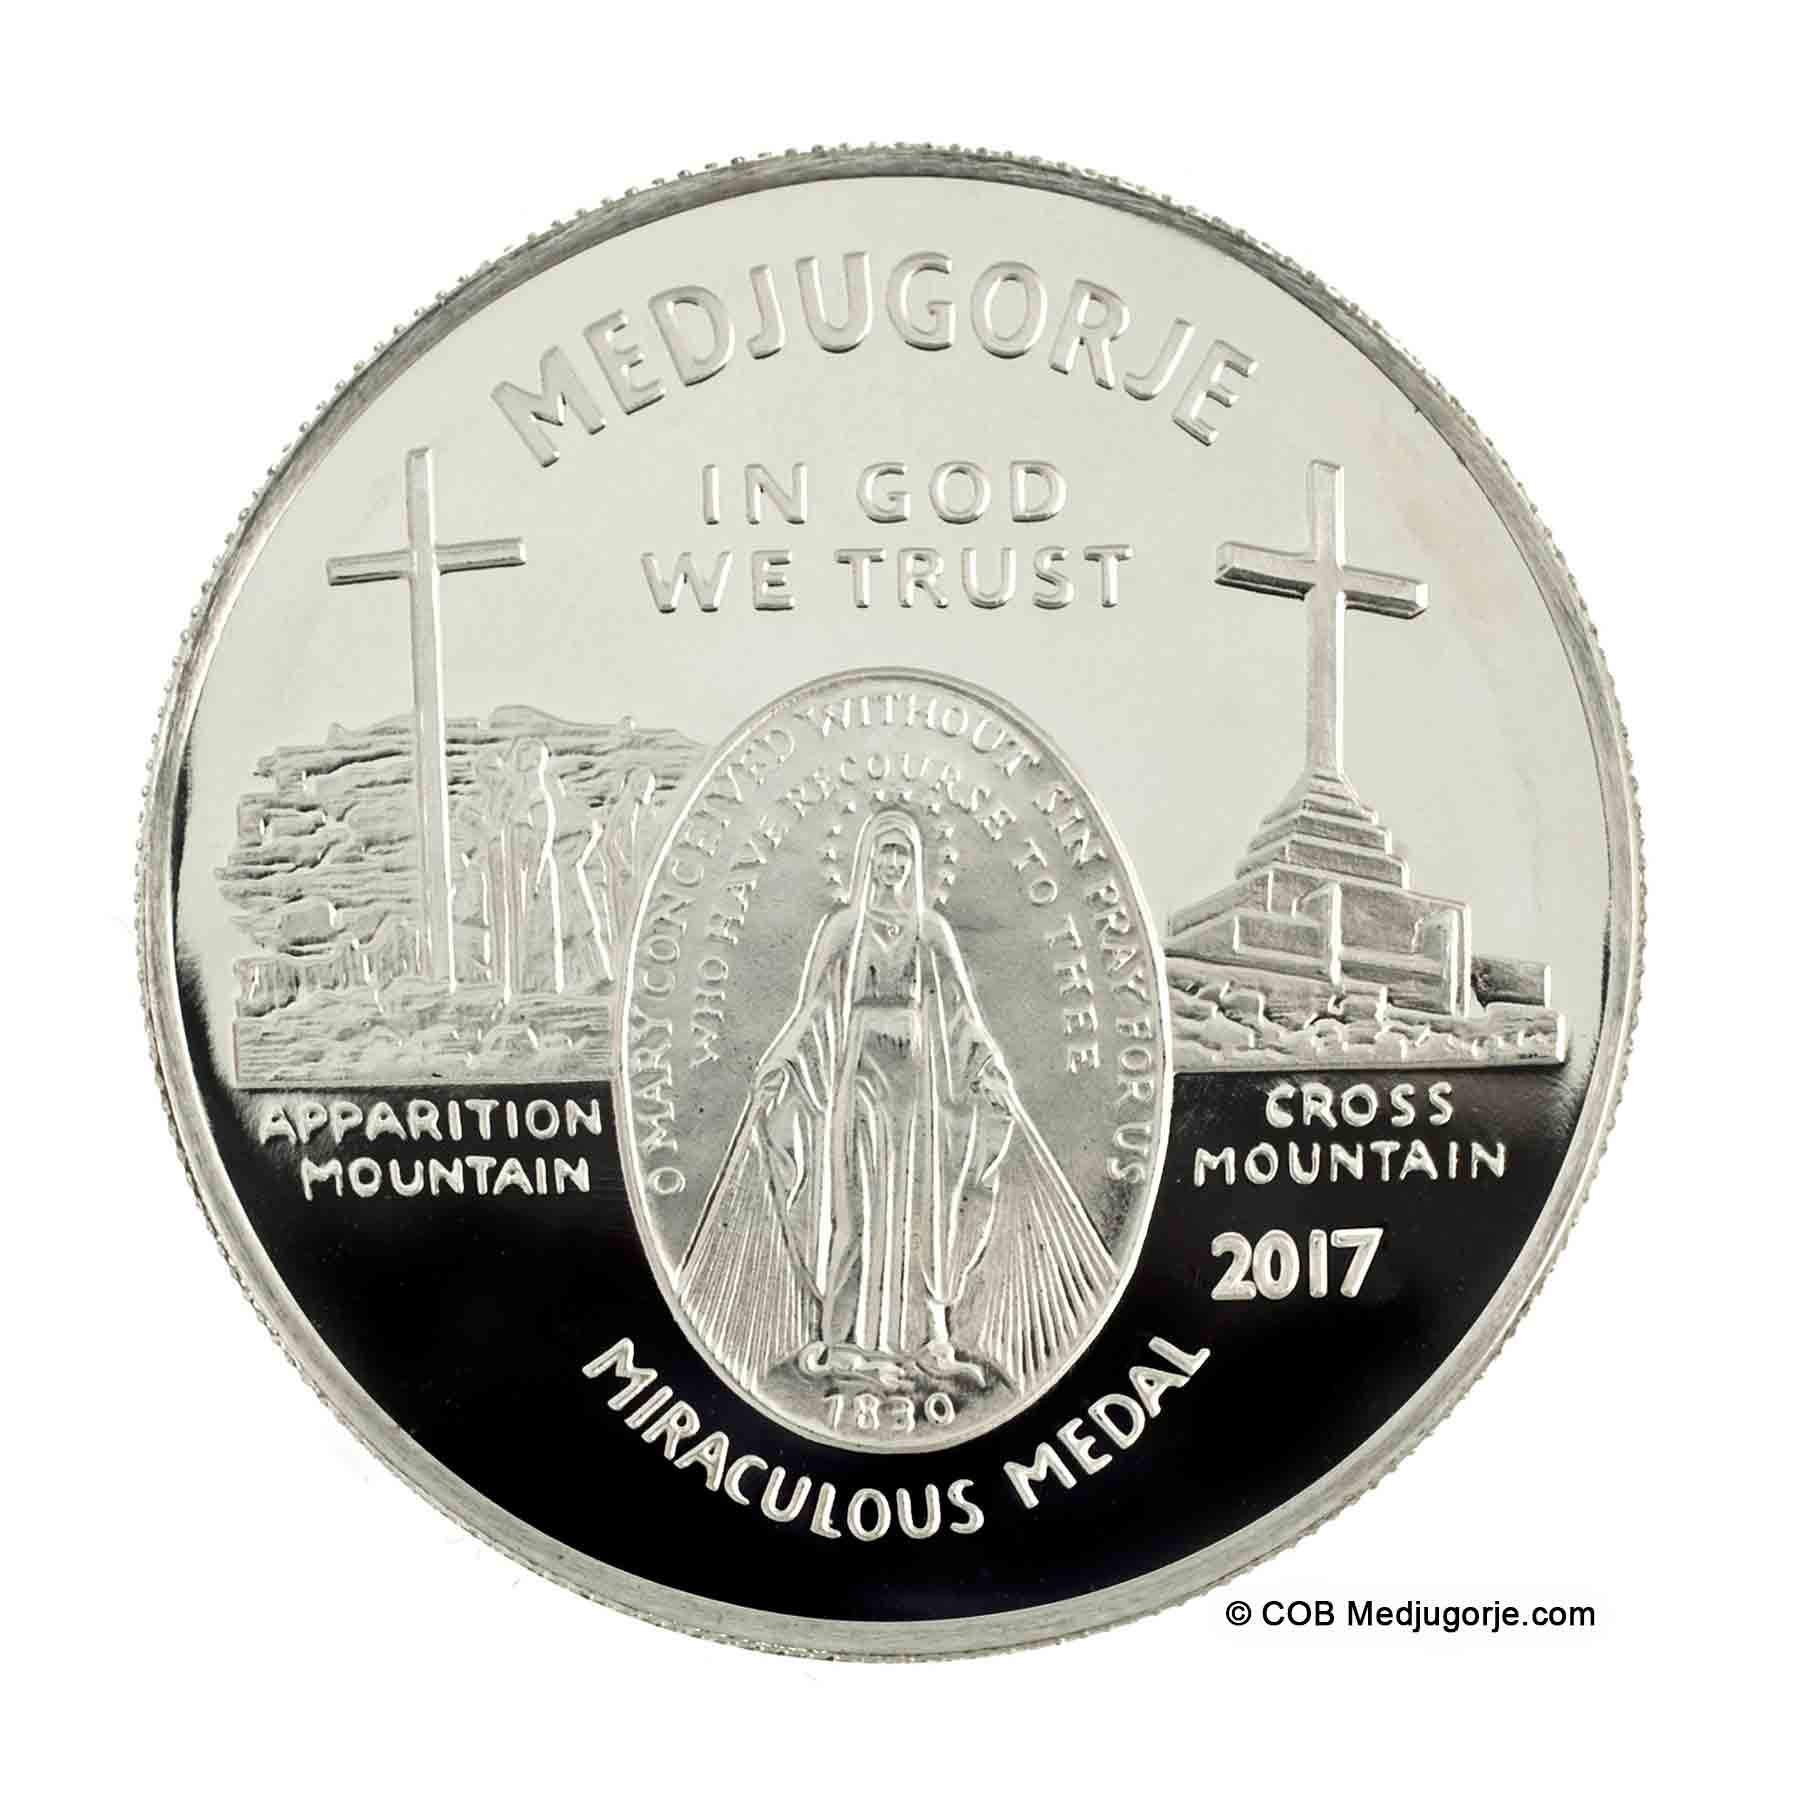 Miraculous Medal Medjugorje Round front